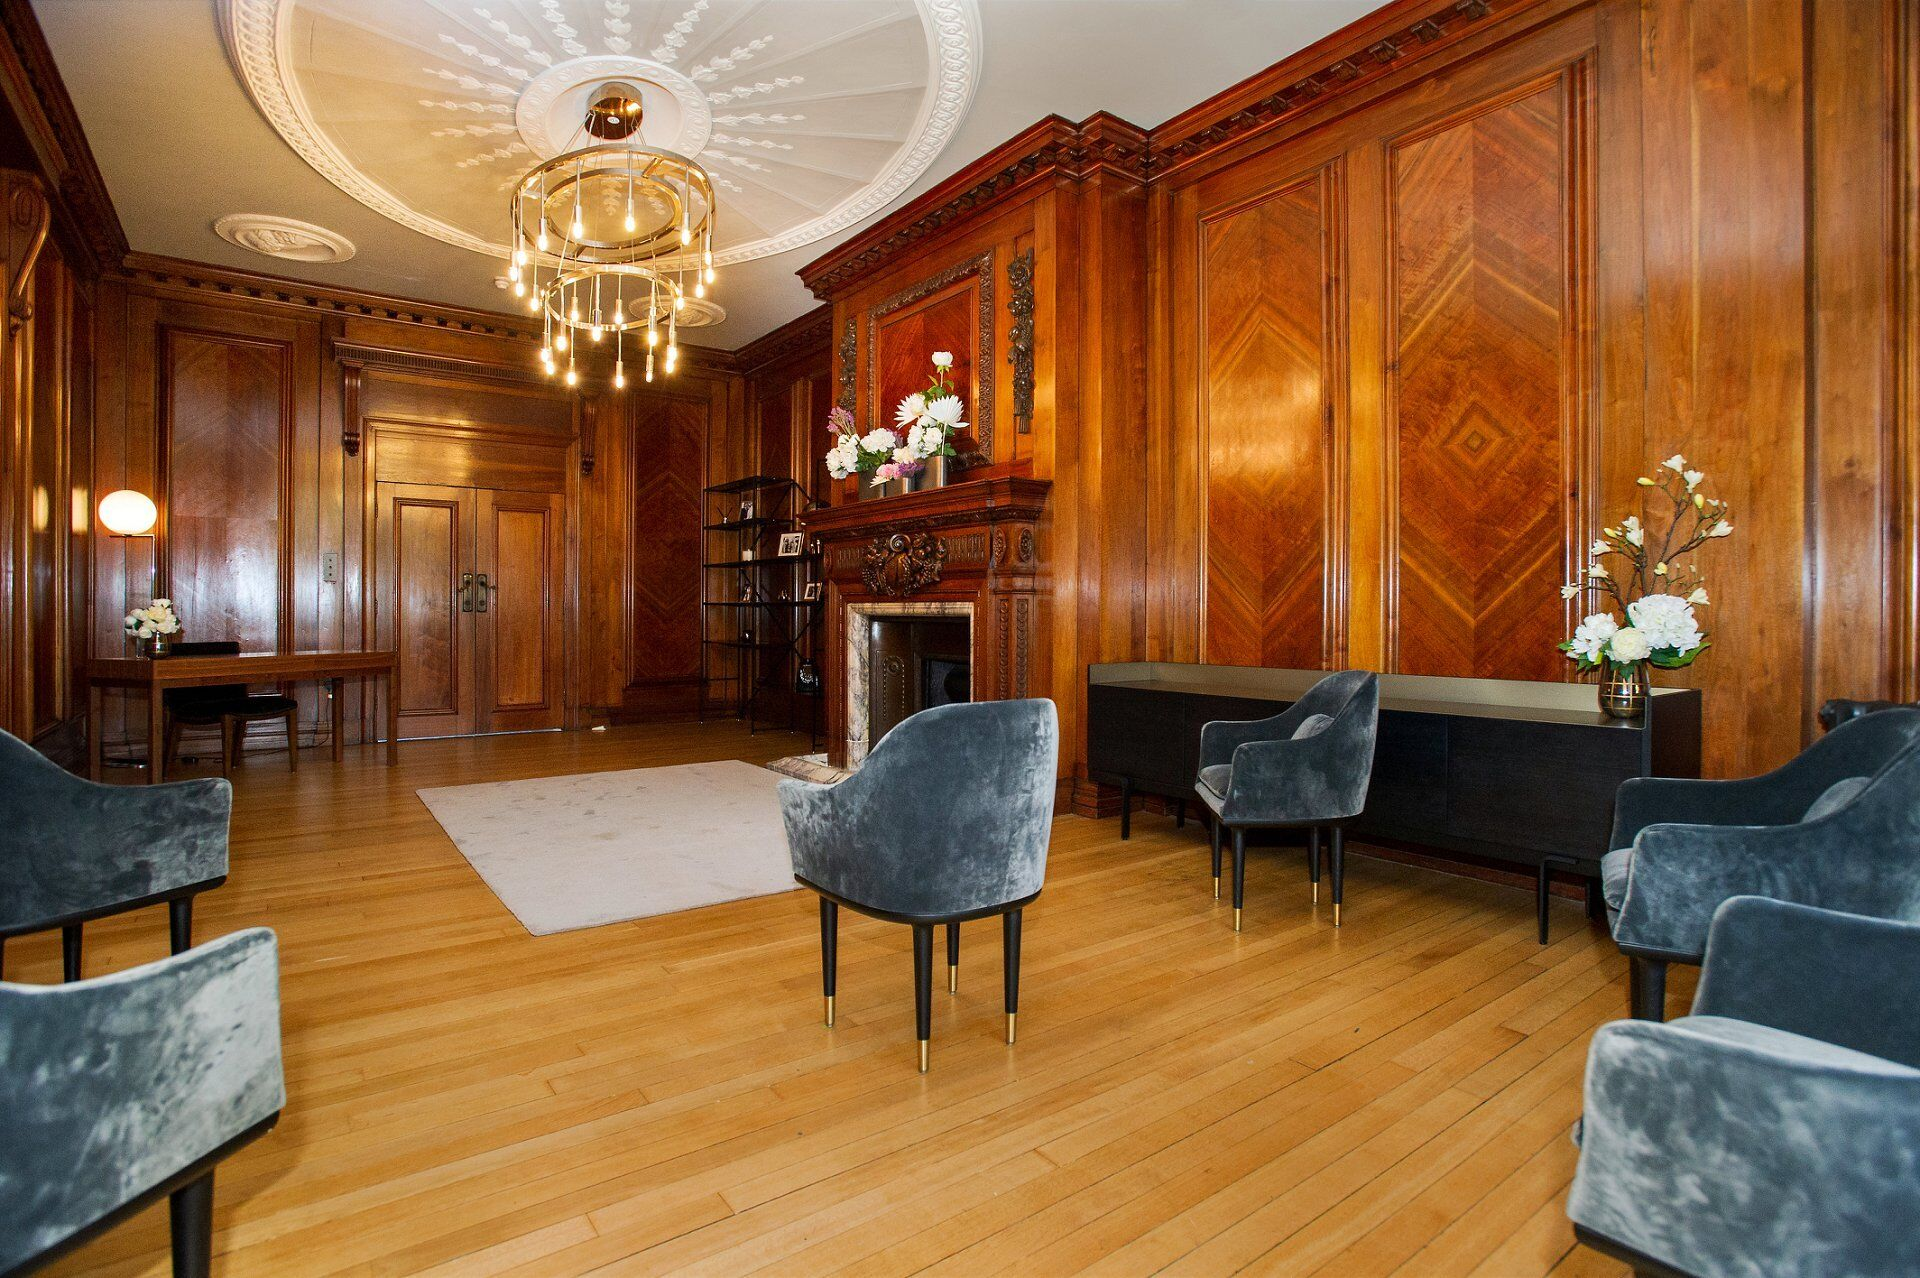 marylebone register office and the paddington room laid out for a maximum of 6 guests under new covid 19 rules